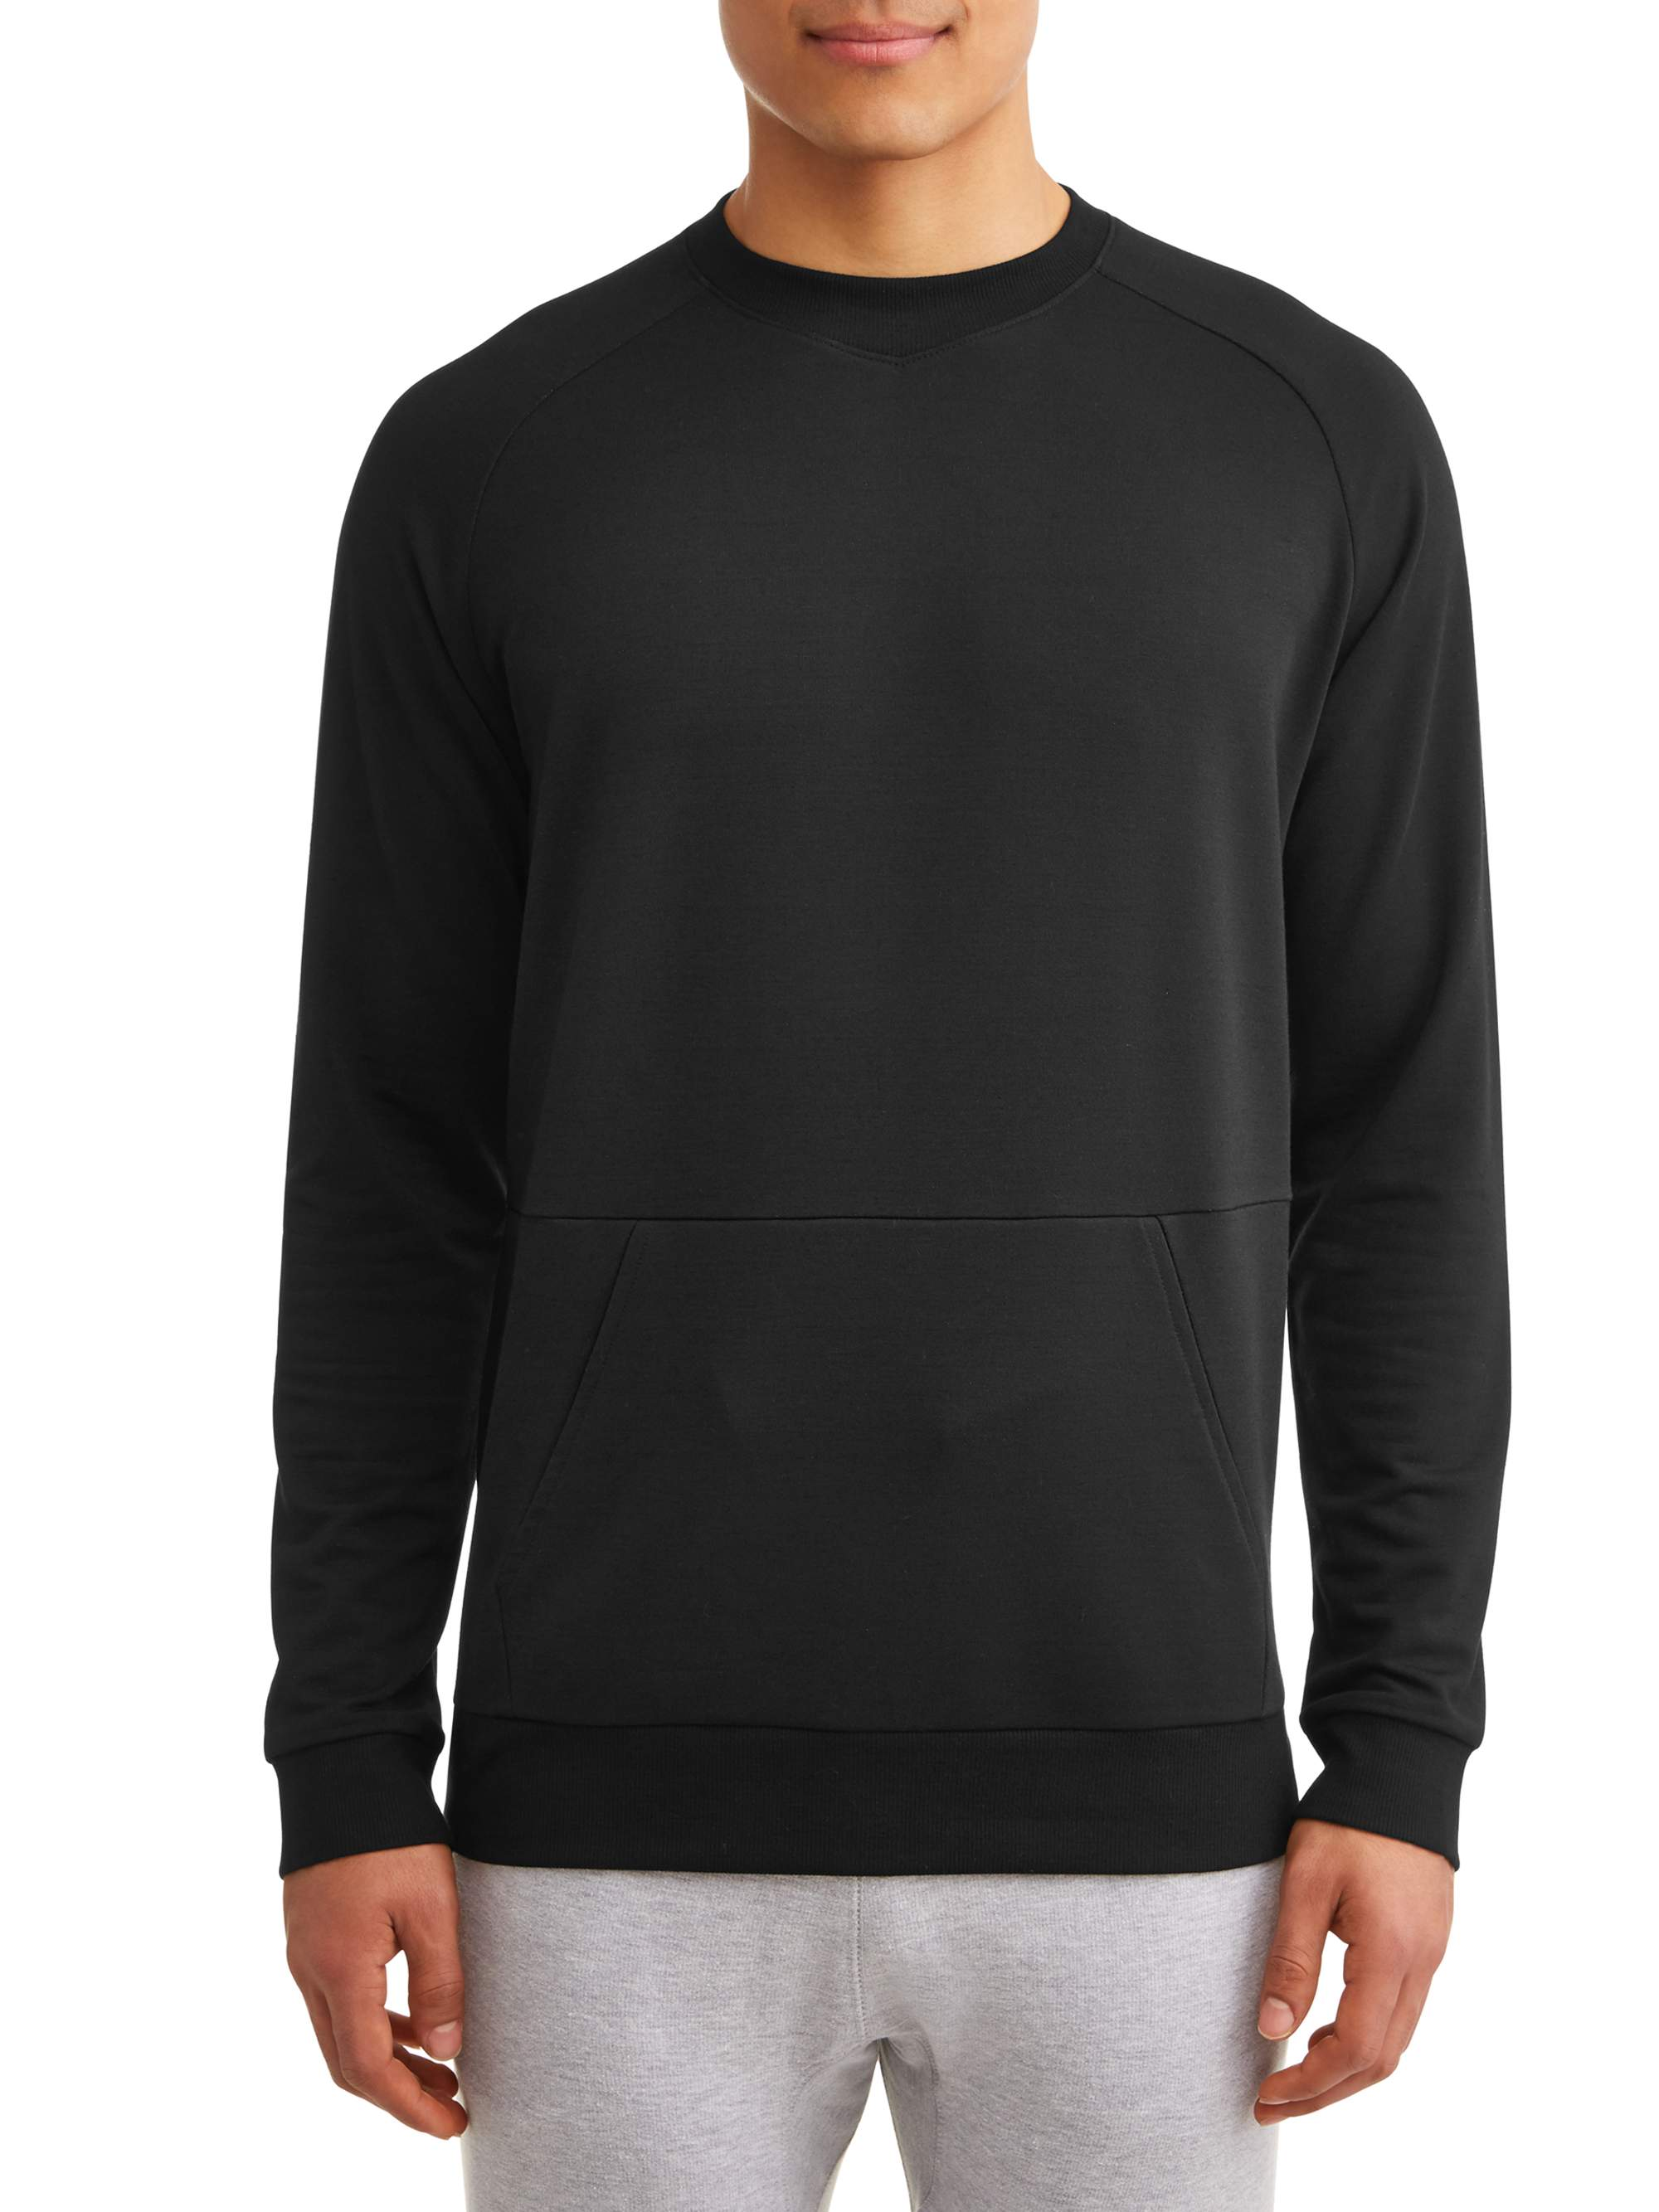 Athletic Works Men's Sweatshirt